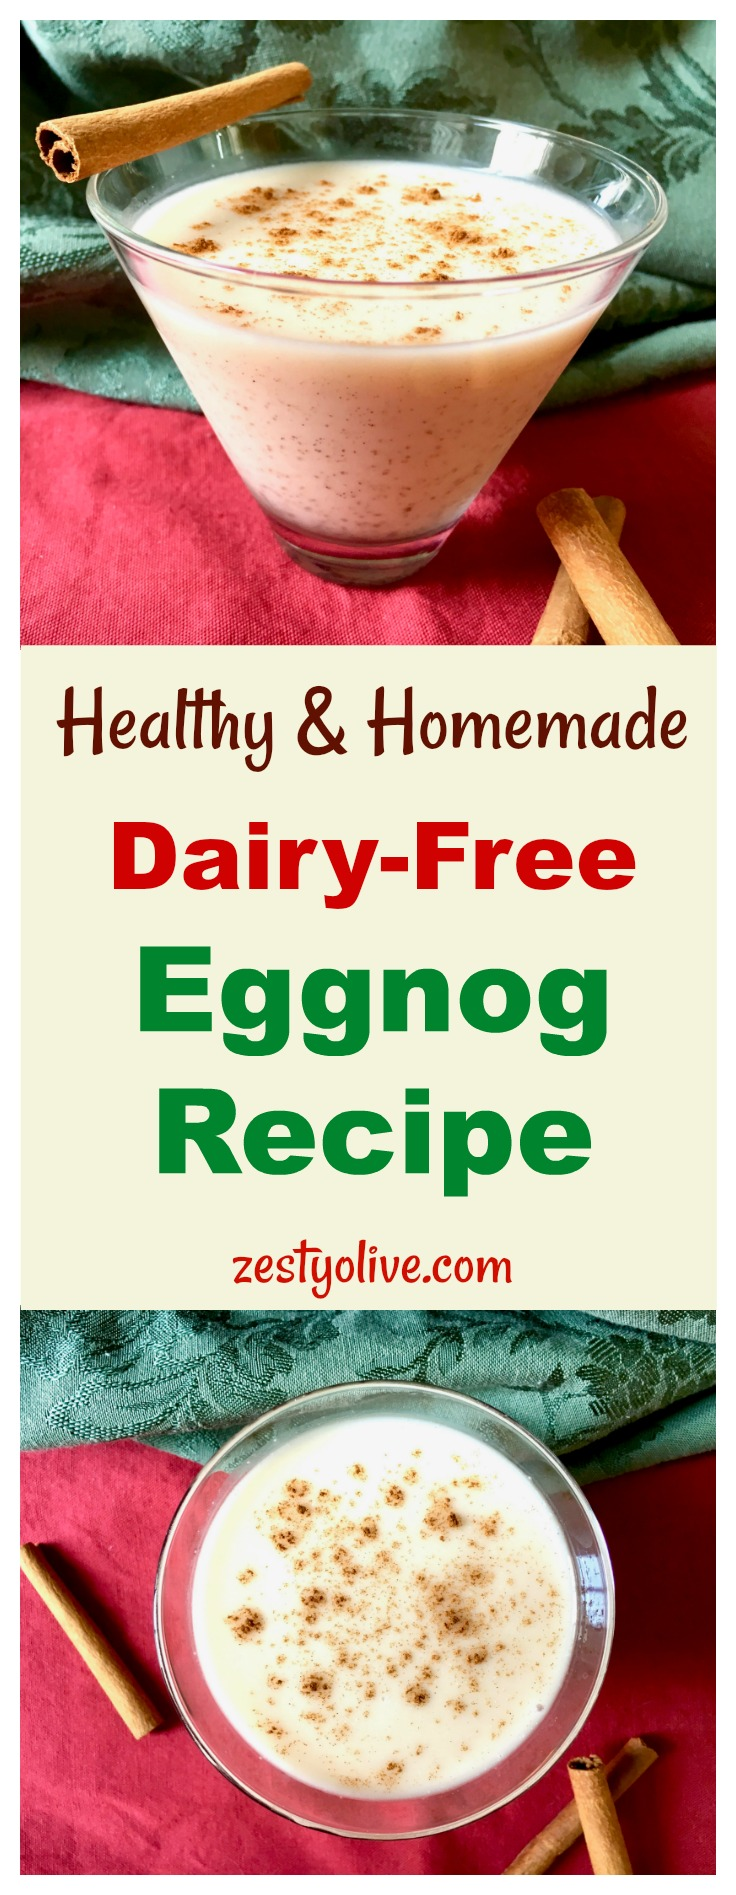 Here's my take on the holiday classic beverage, eggnog. It's myHealthy Homemade Dairy-Free Eggnog Recipe made with coconut milk, organic ingredients and no refined sugar.